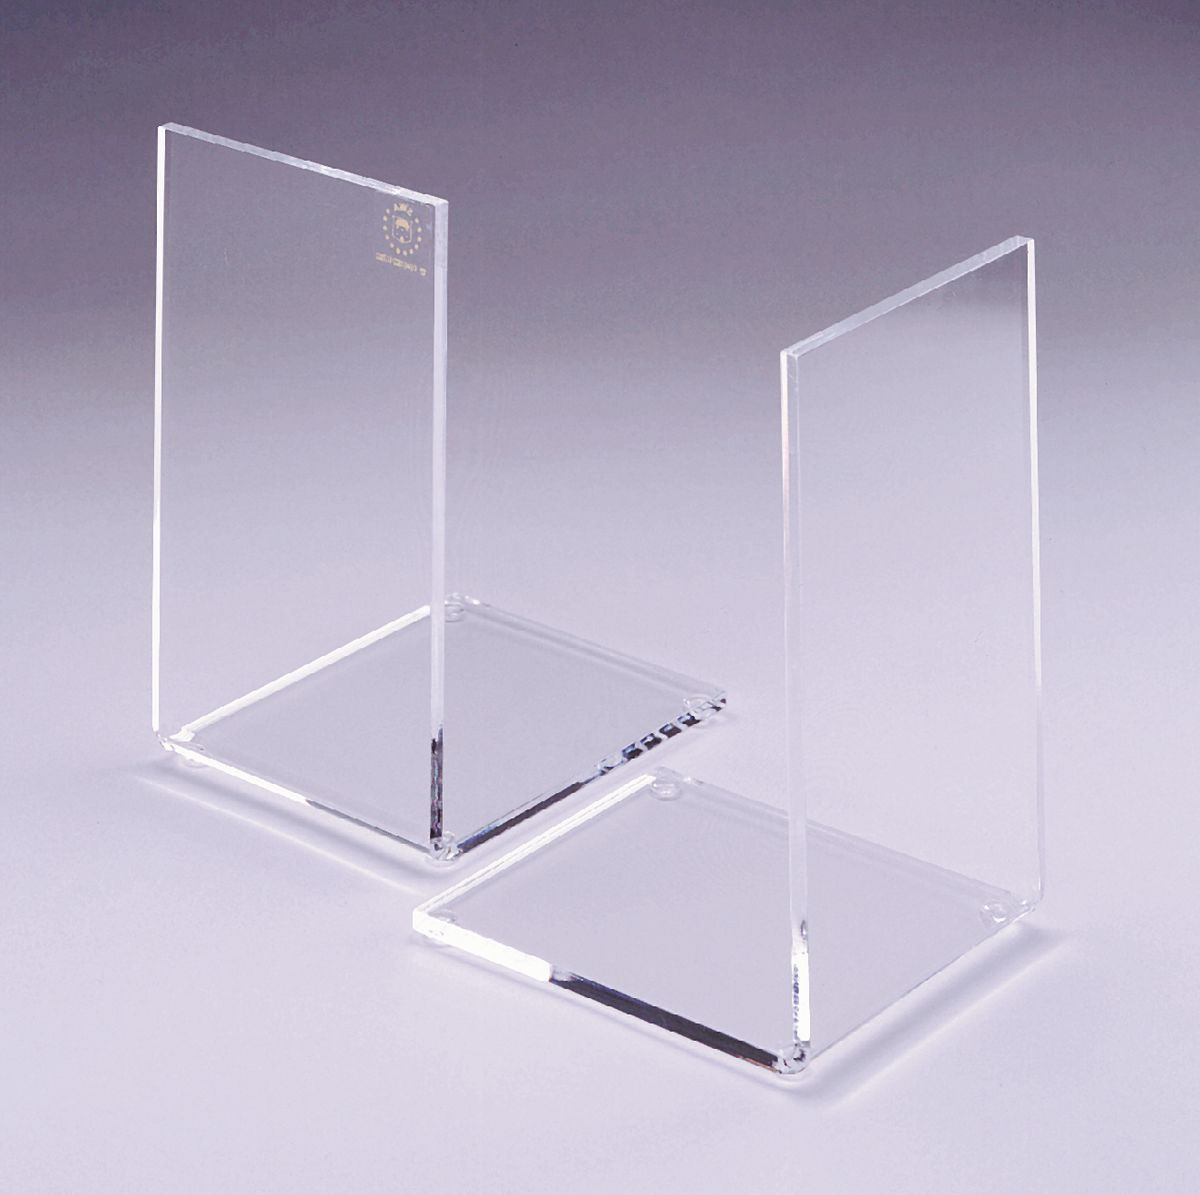 Acrylic Book Ends Gresswell Specialist Resources For